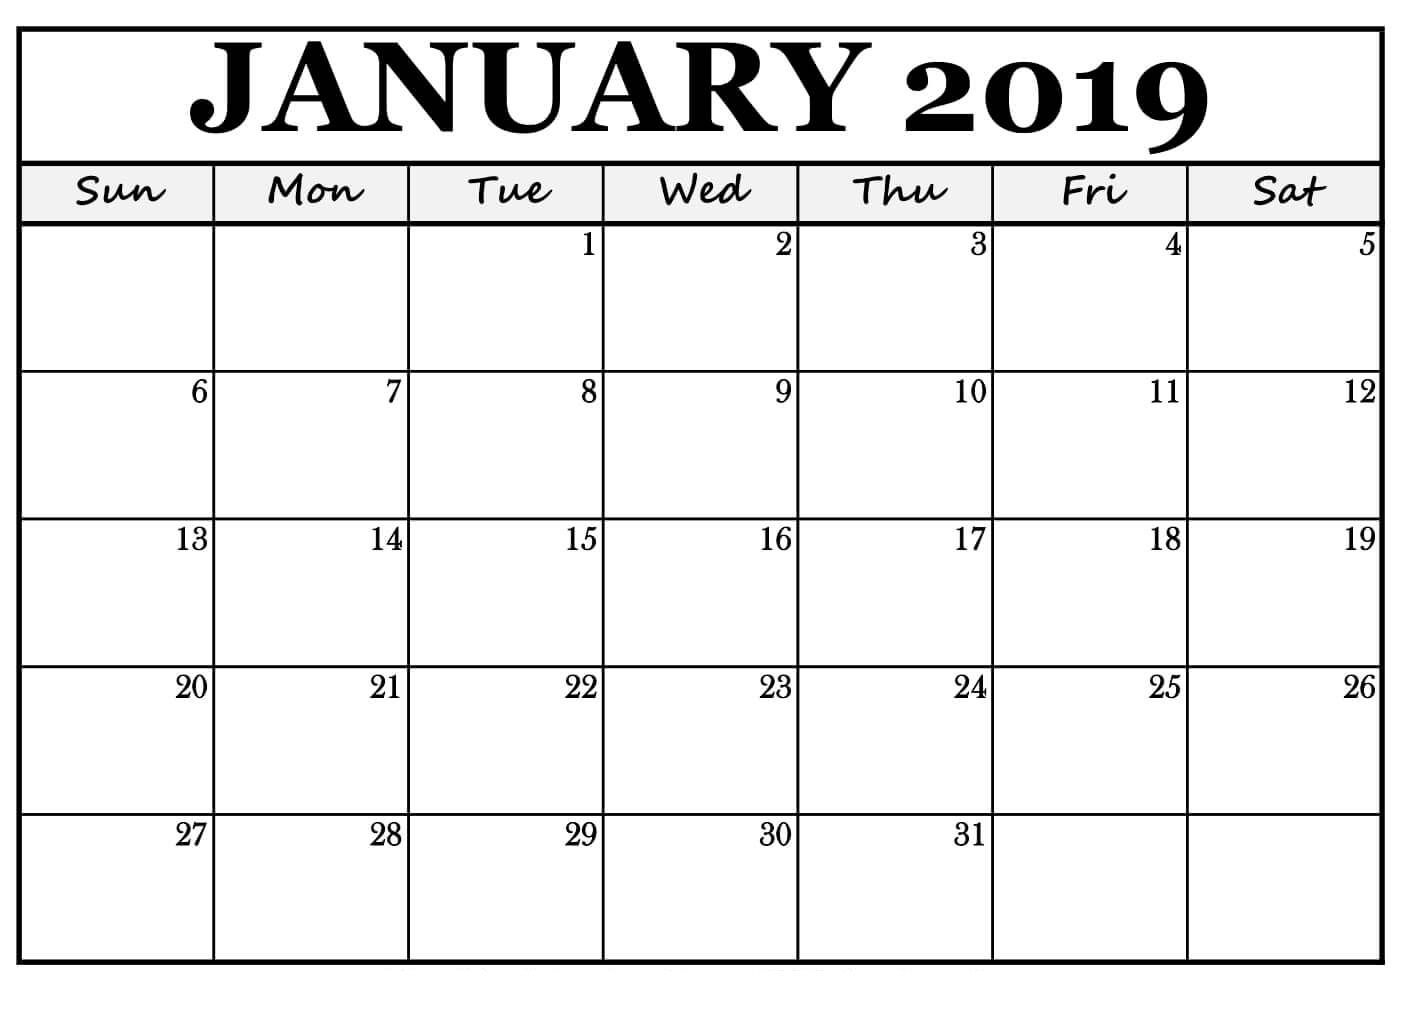 January 2019 Calendar For #landscape Free Print | November with regard to Free Printable Blank Monthly Calendar 2019